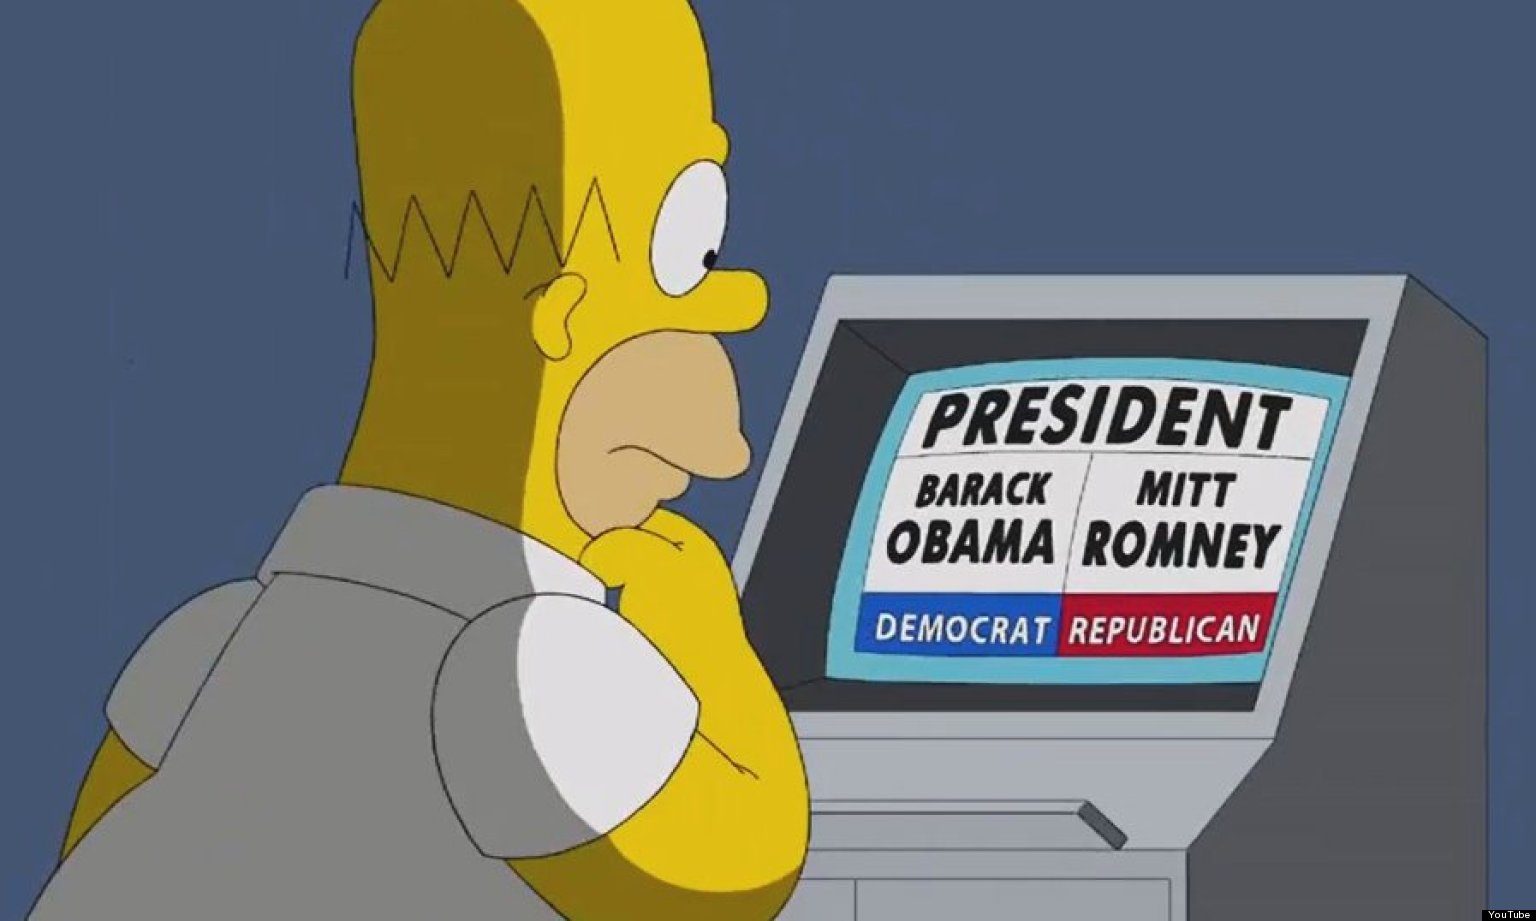 """""""No, I want to vote for Obama! It's time for a change!"""""""